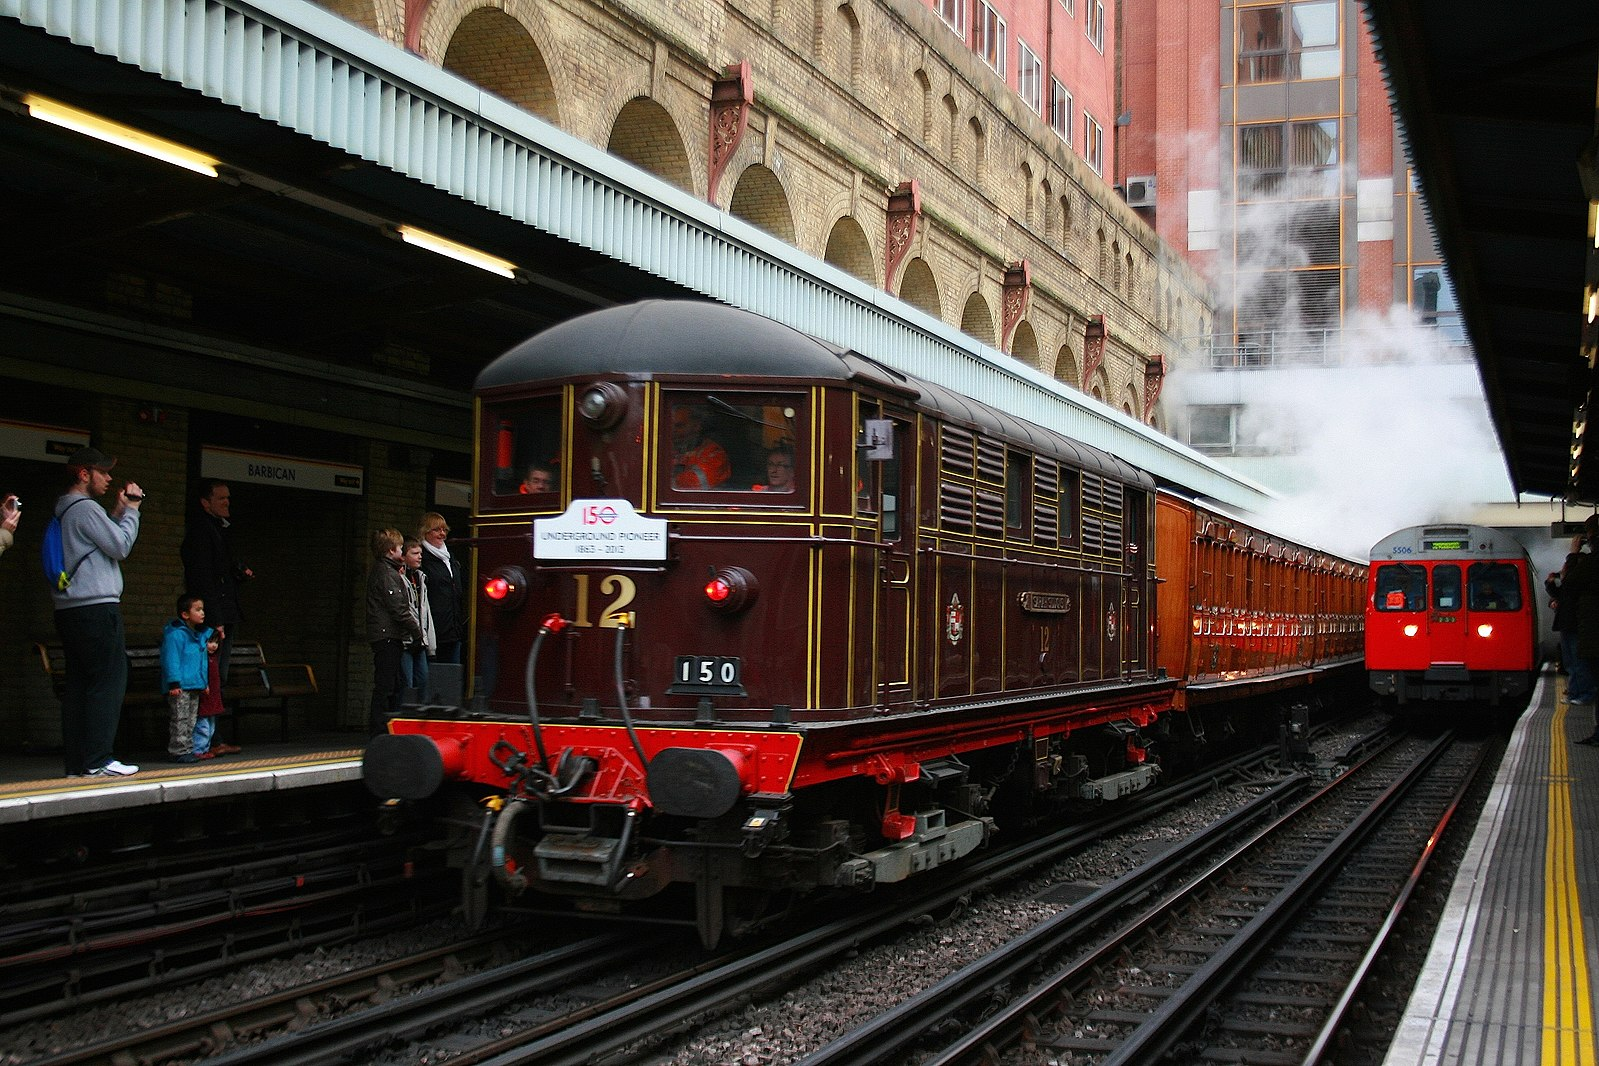 The preserved Sarah Siddons locomotive (built in the early 20th century, seen here at Barbican station.